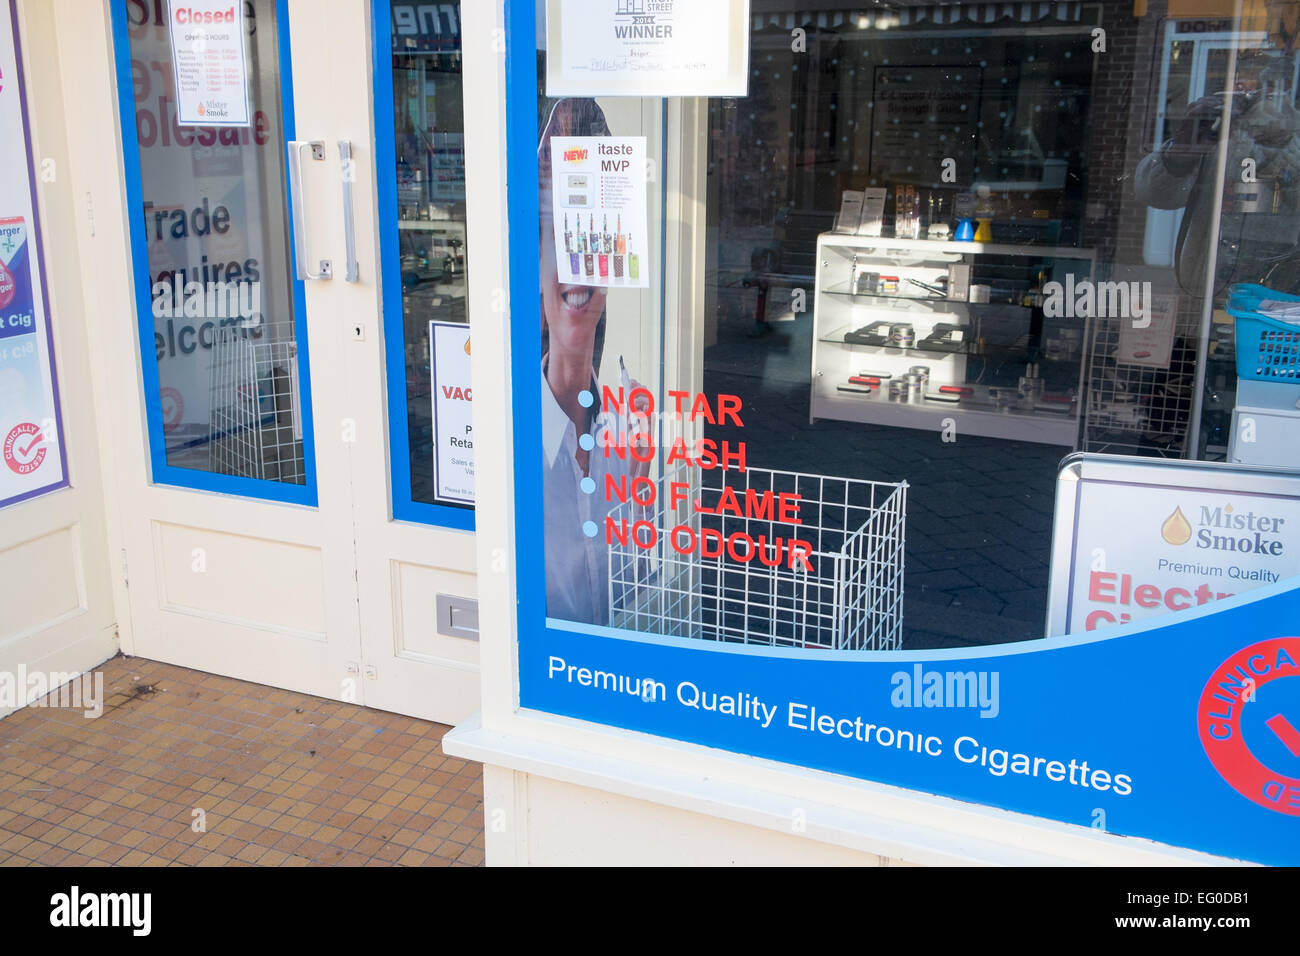 shop in Belper, Derbyshire selling electronic e cigarettes and vaping mods - Stock Image